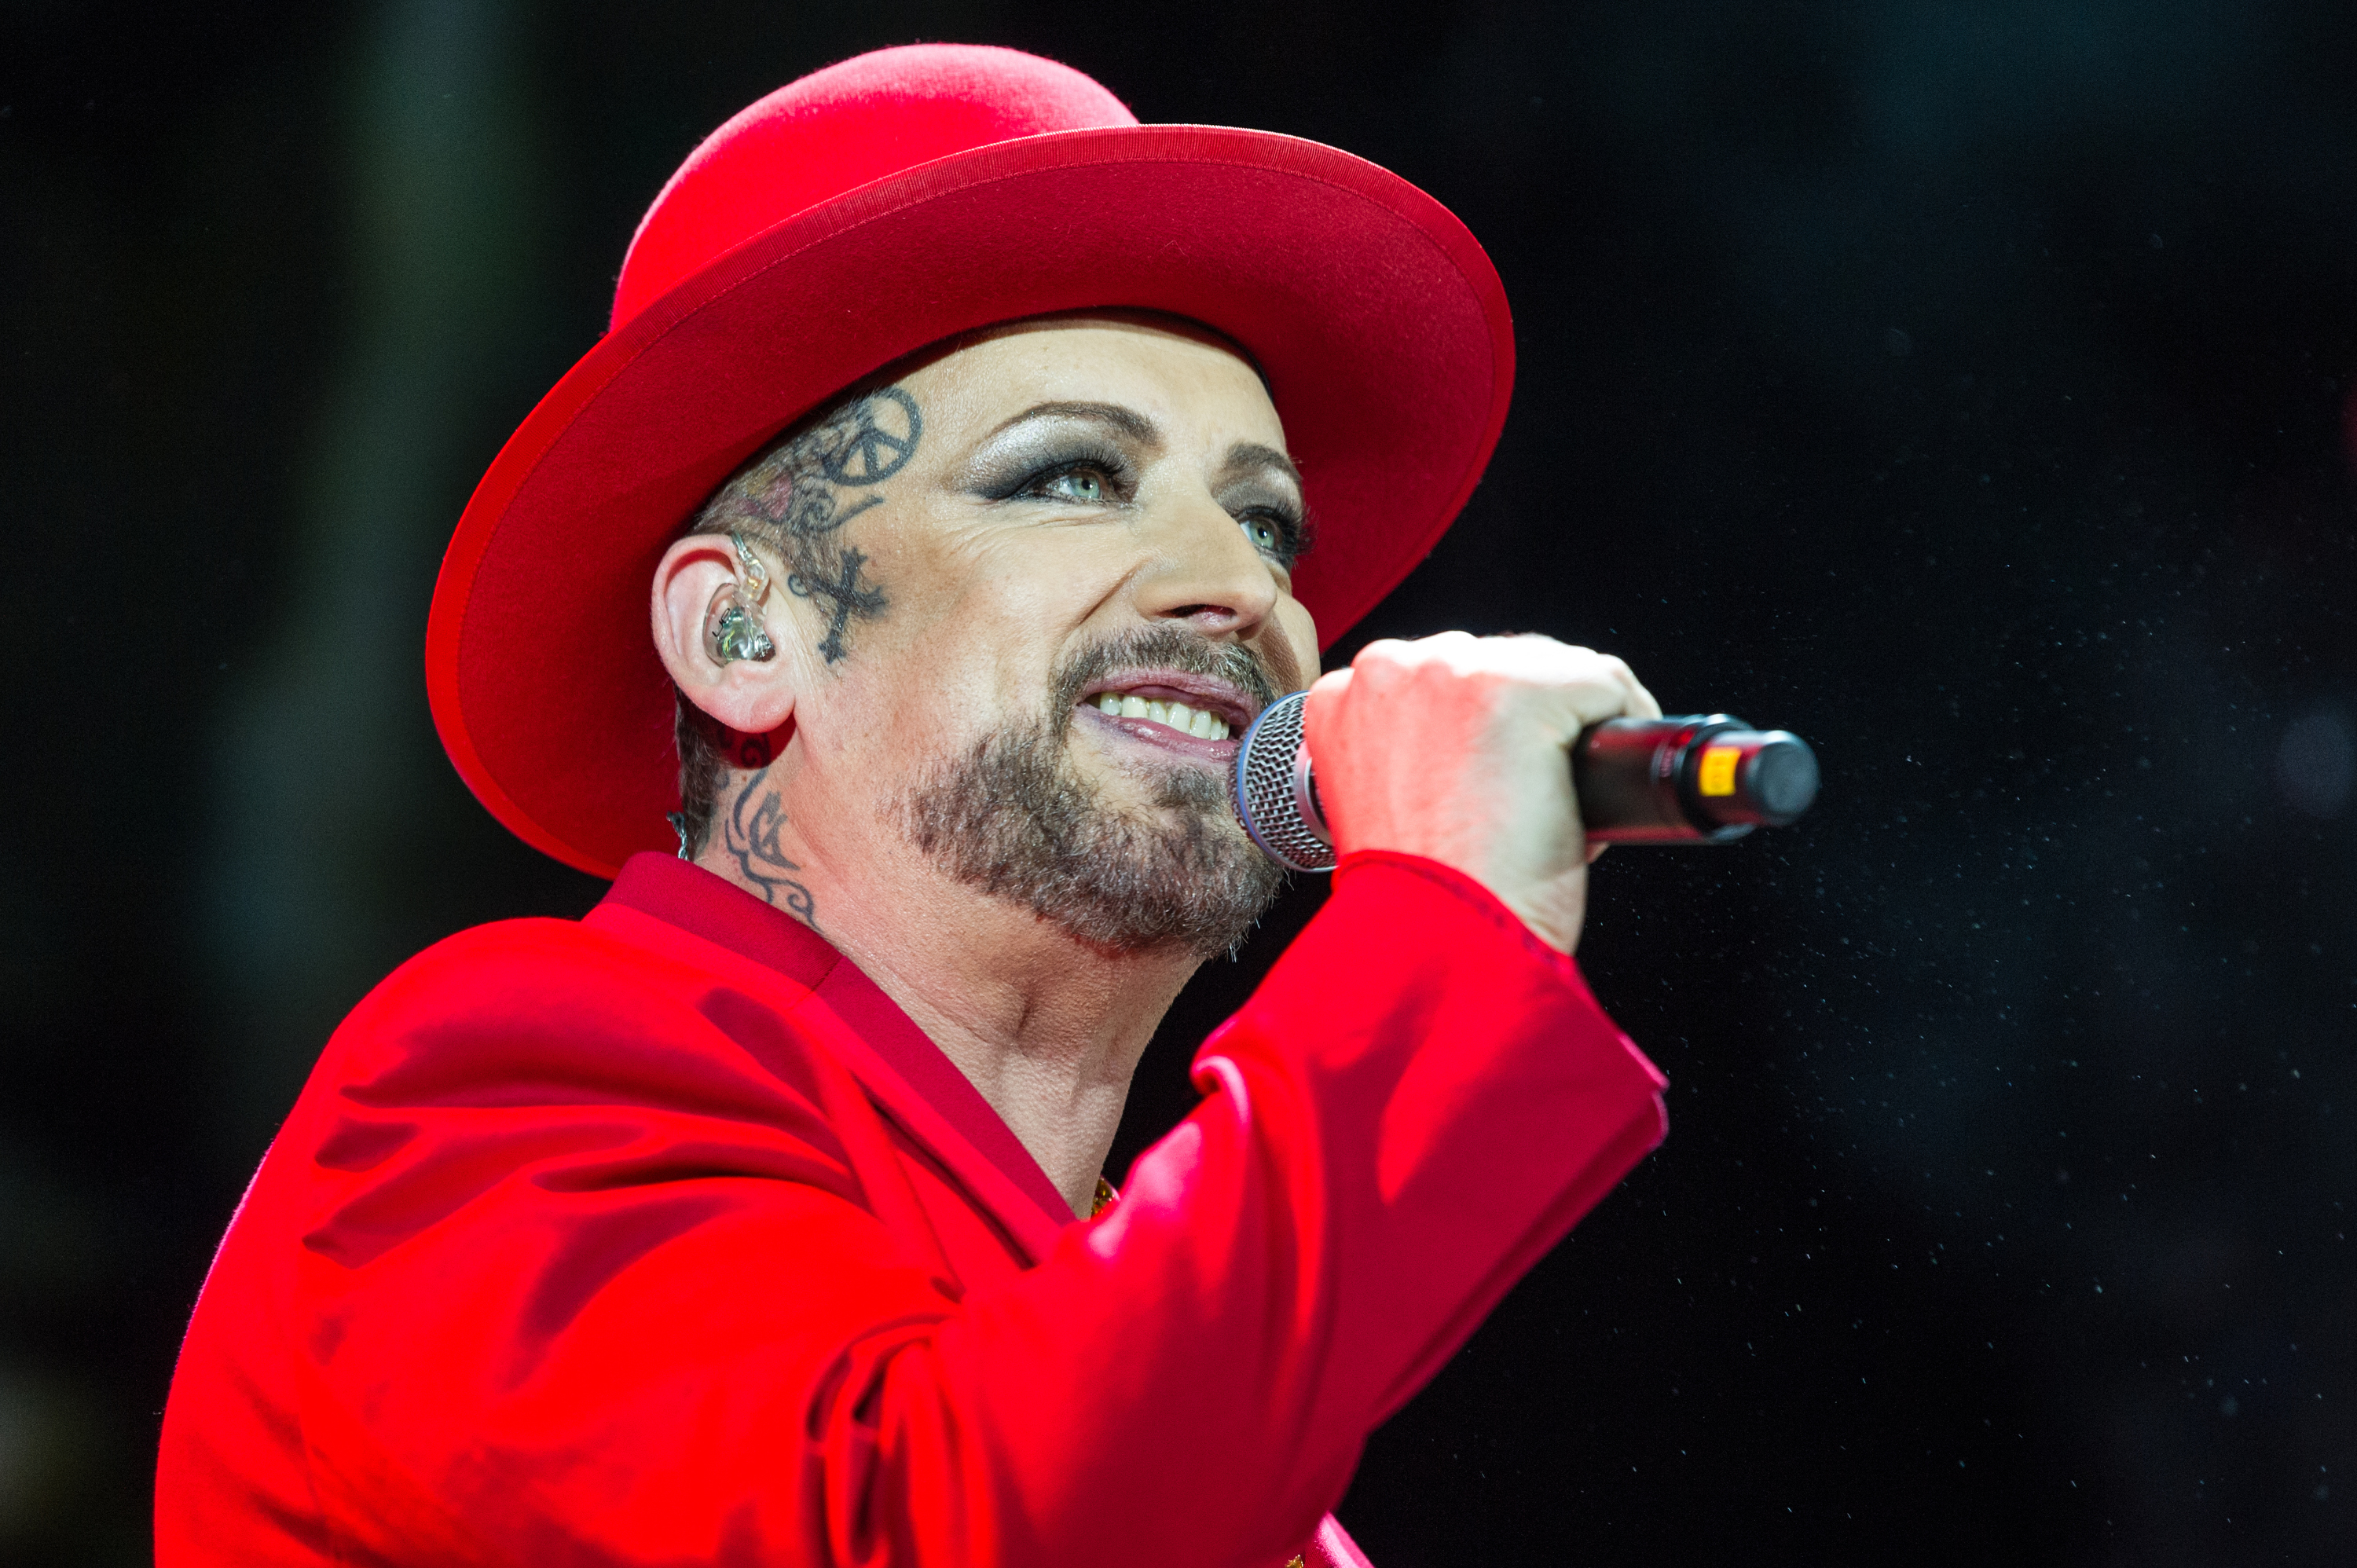 Boy George of Culture Club performs in concert at Eventim Apollo, London. (Brian Rasic/WireImage)